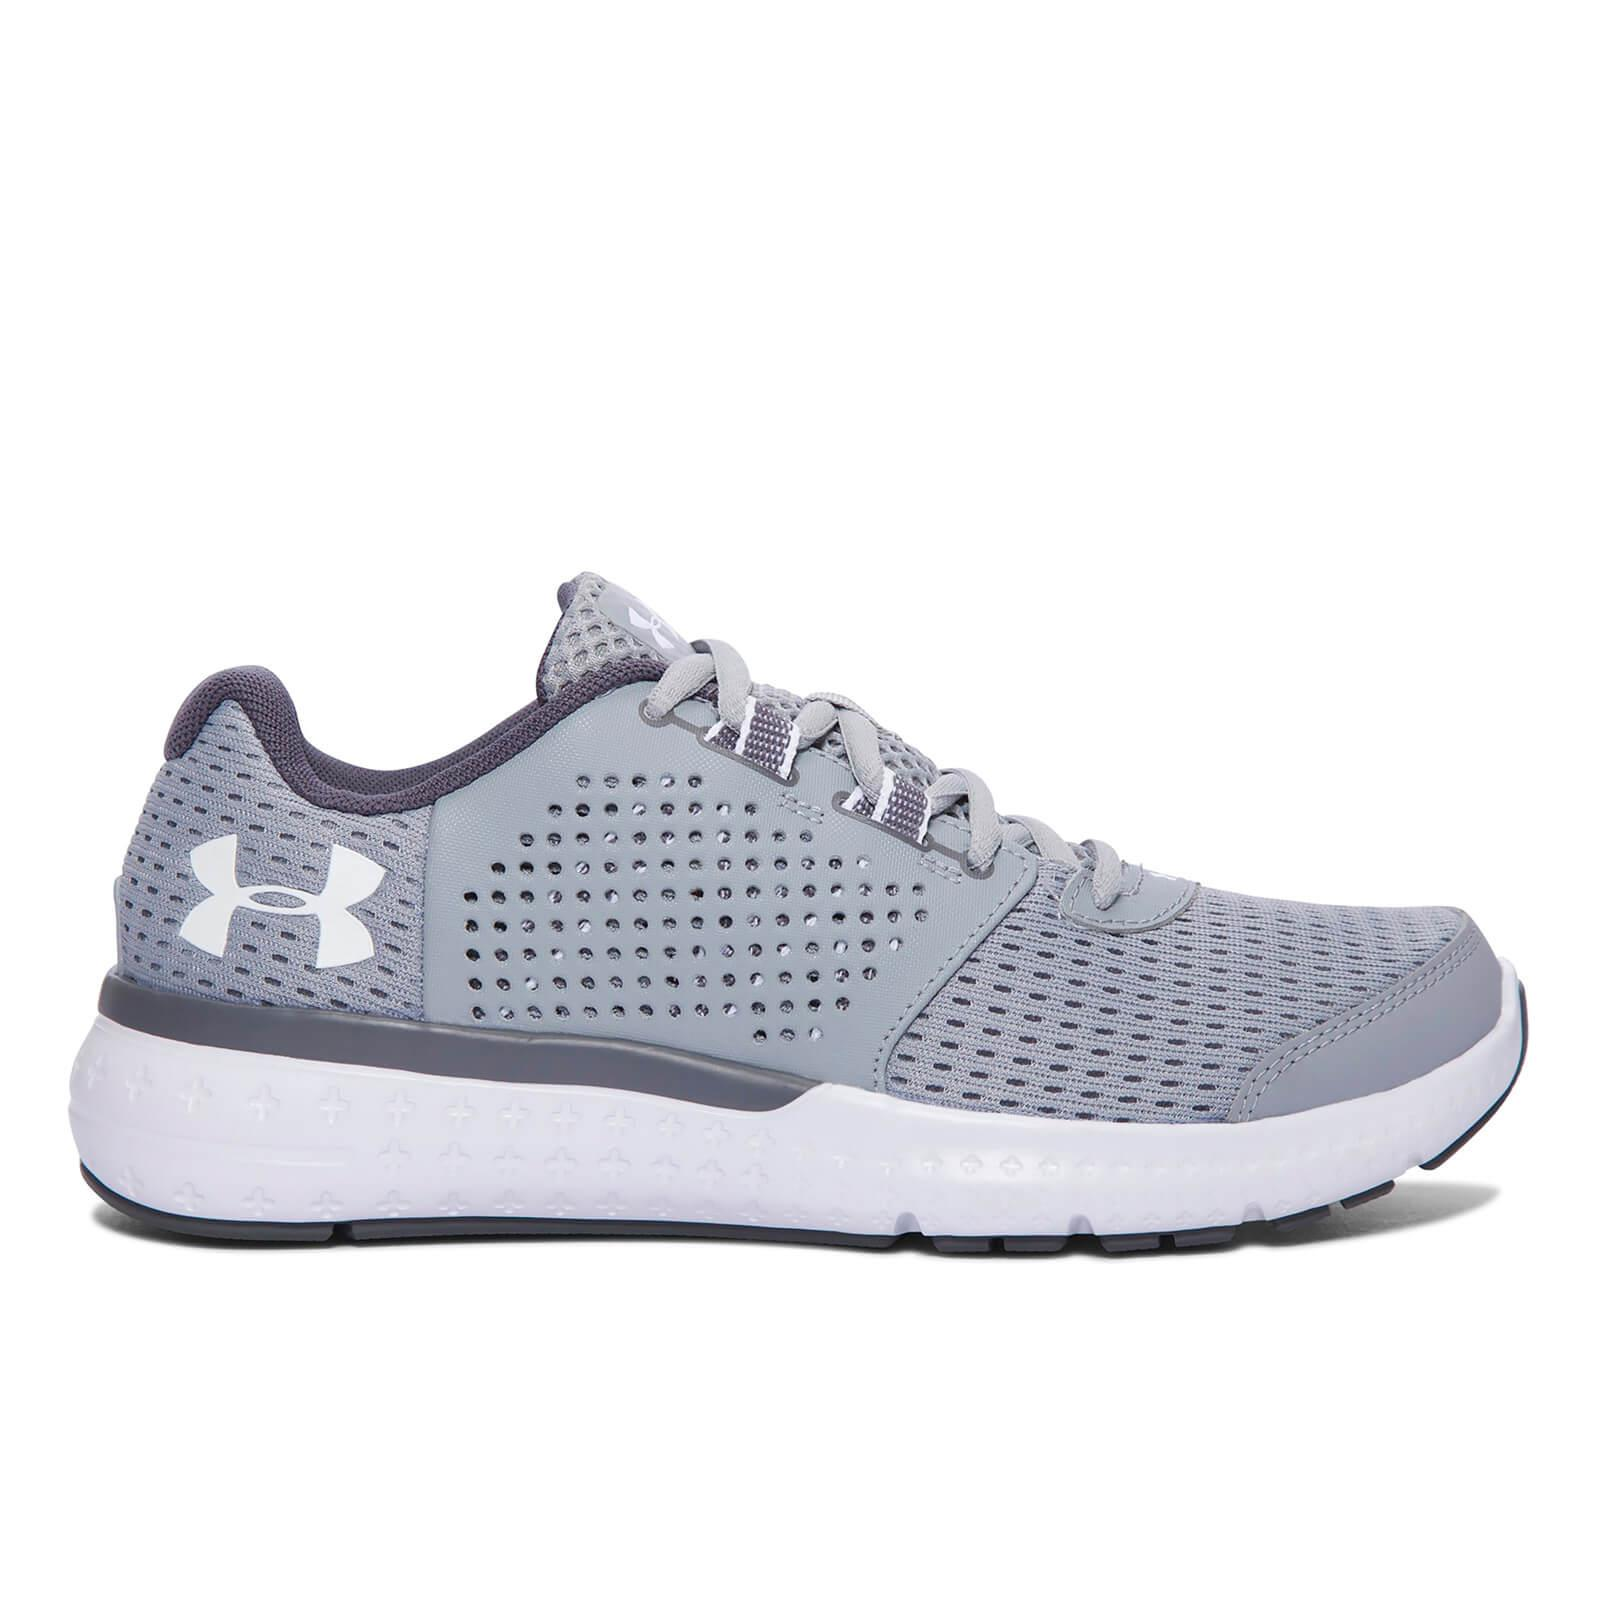 Under Armour Women S Micro G Fuel Running Shoes